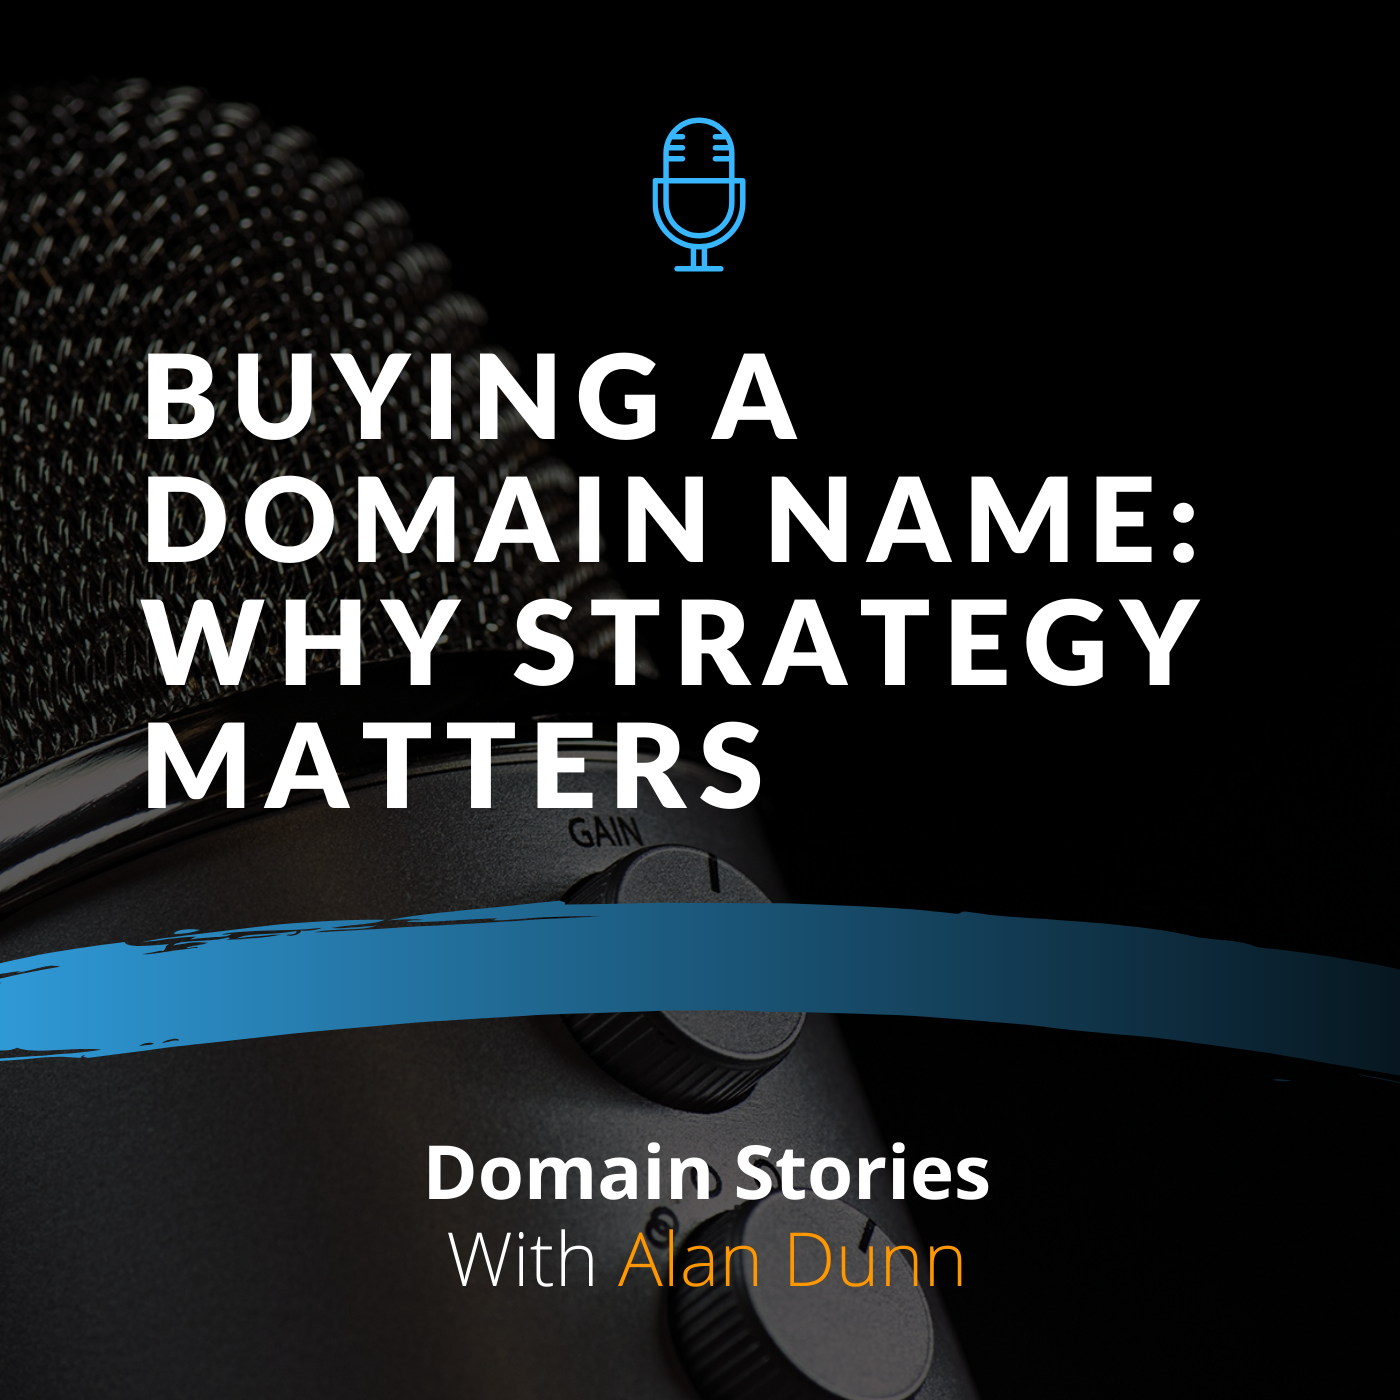 Buying a domain name - why strategy matters